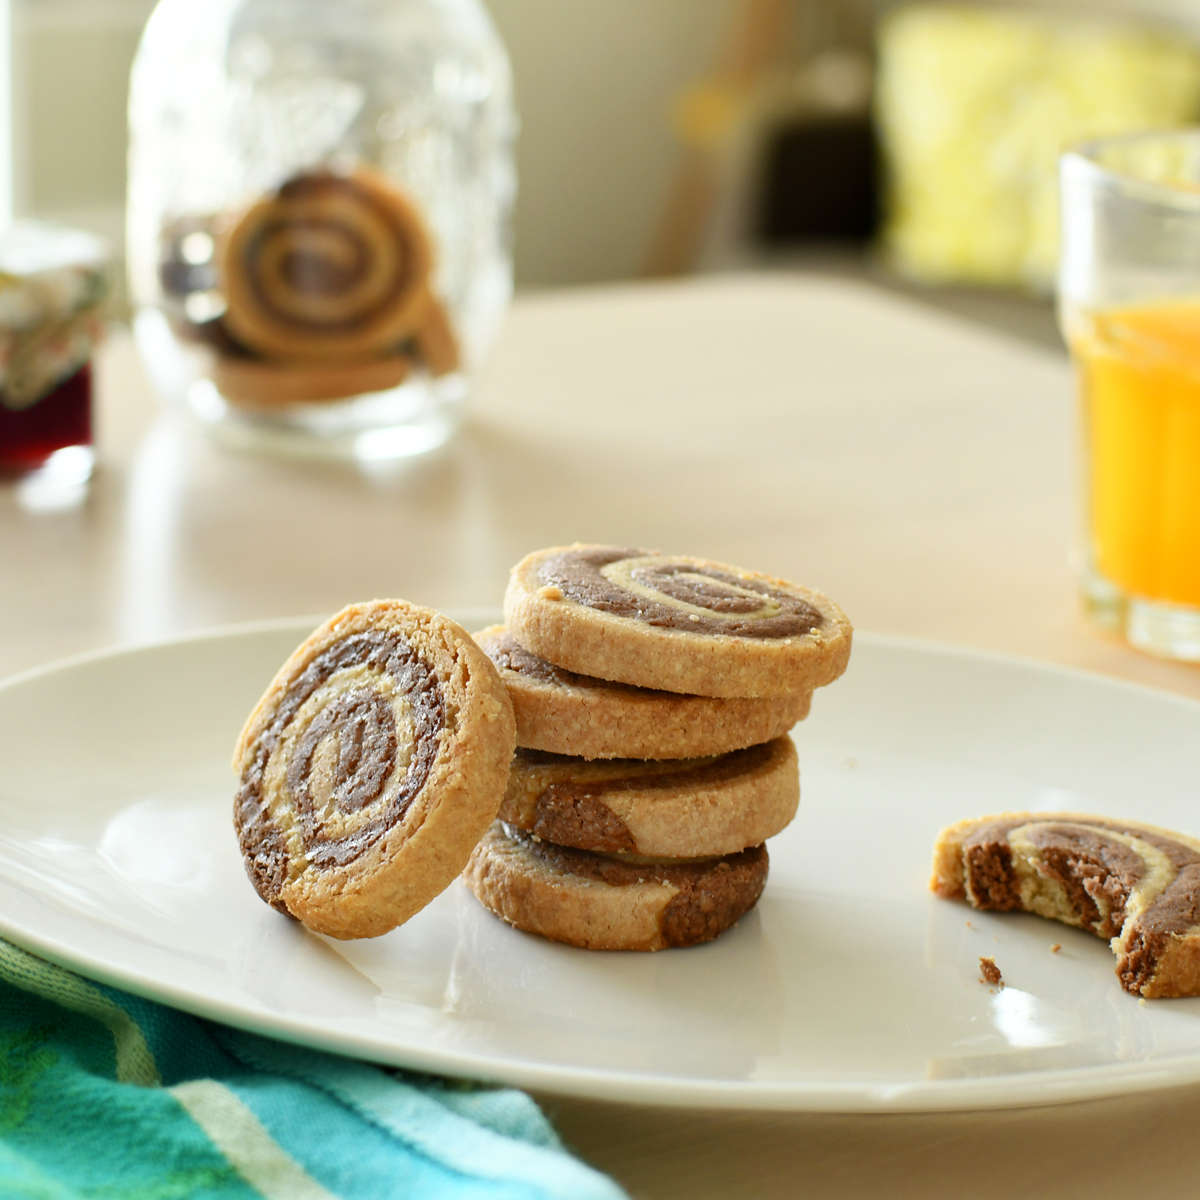 For a snack, opt for a delicious homemade choco-spiral shortbread recipe!